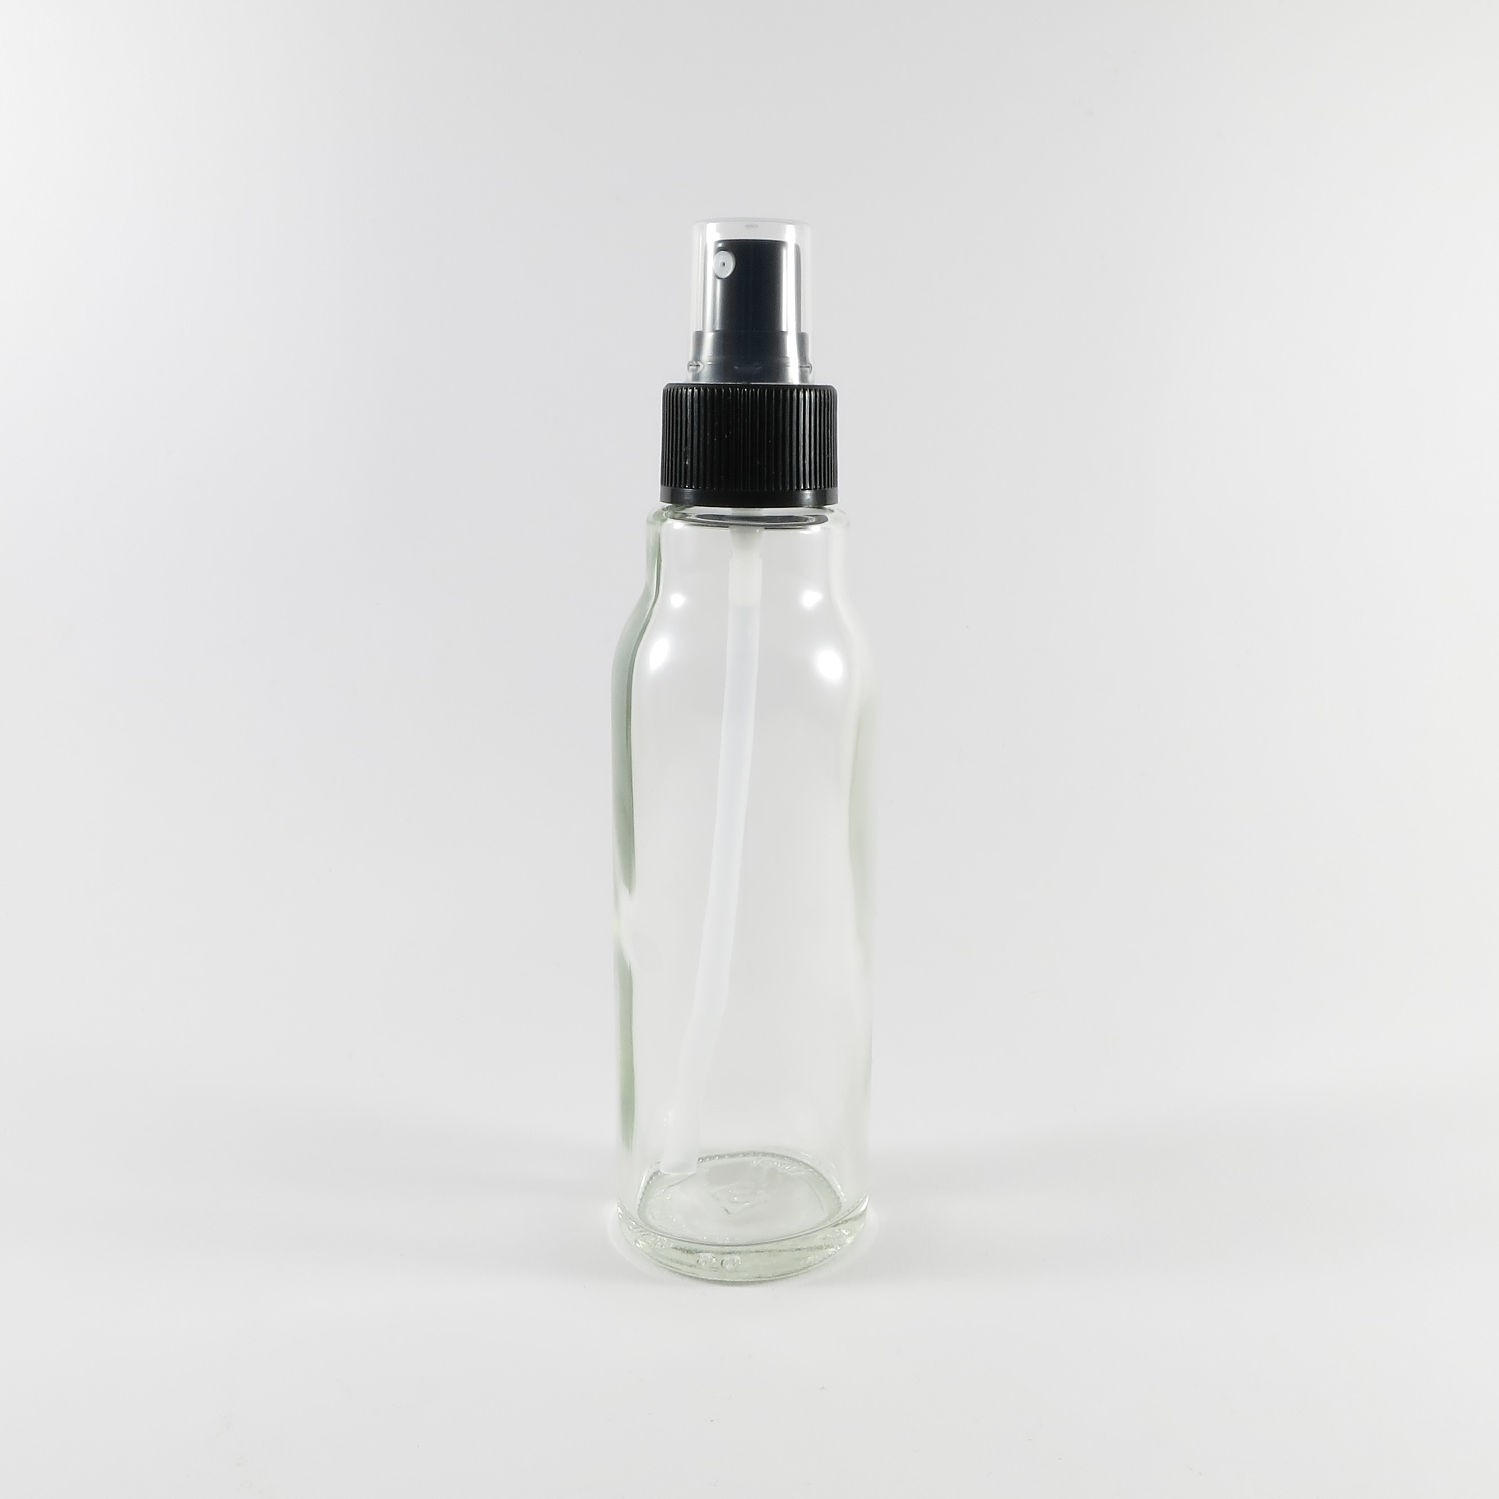 Sprayflaska i glas, 100 ml